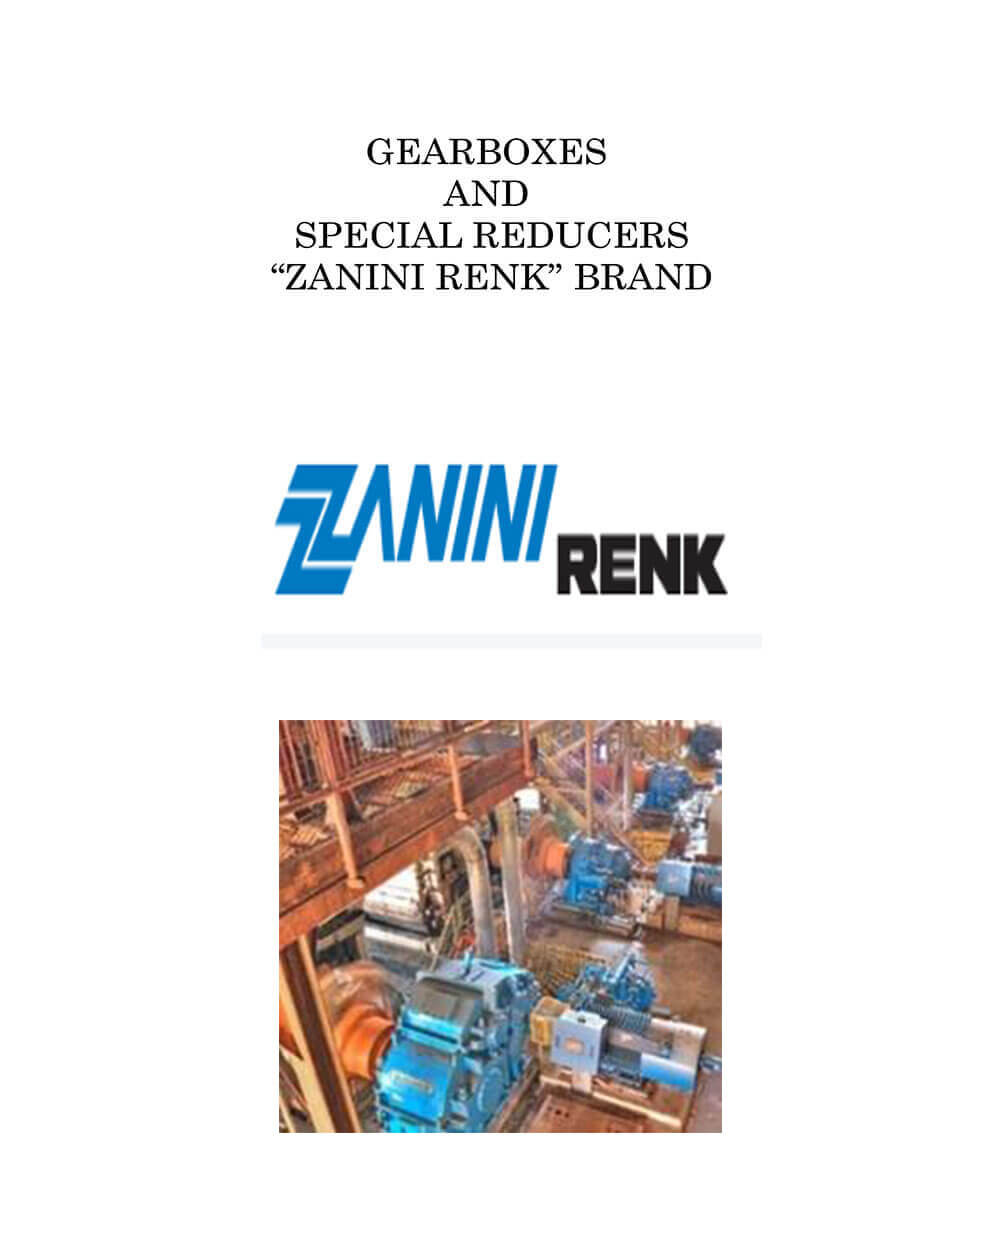 Gearboxes and Special Reducers